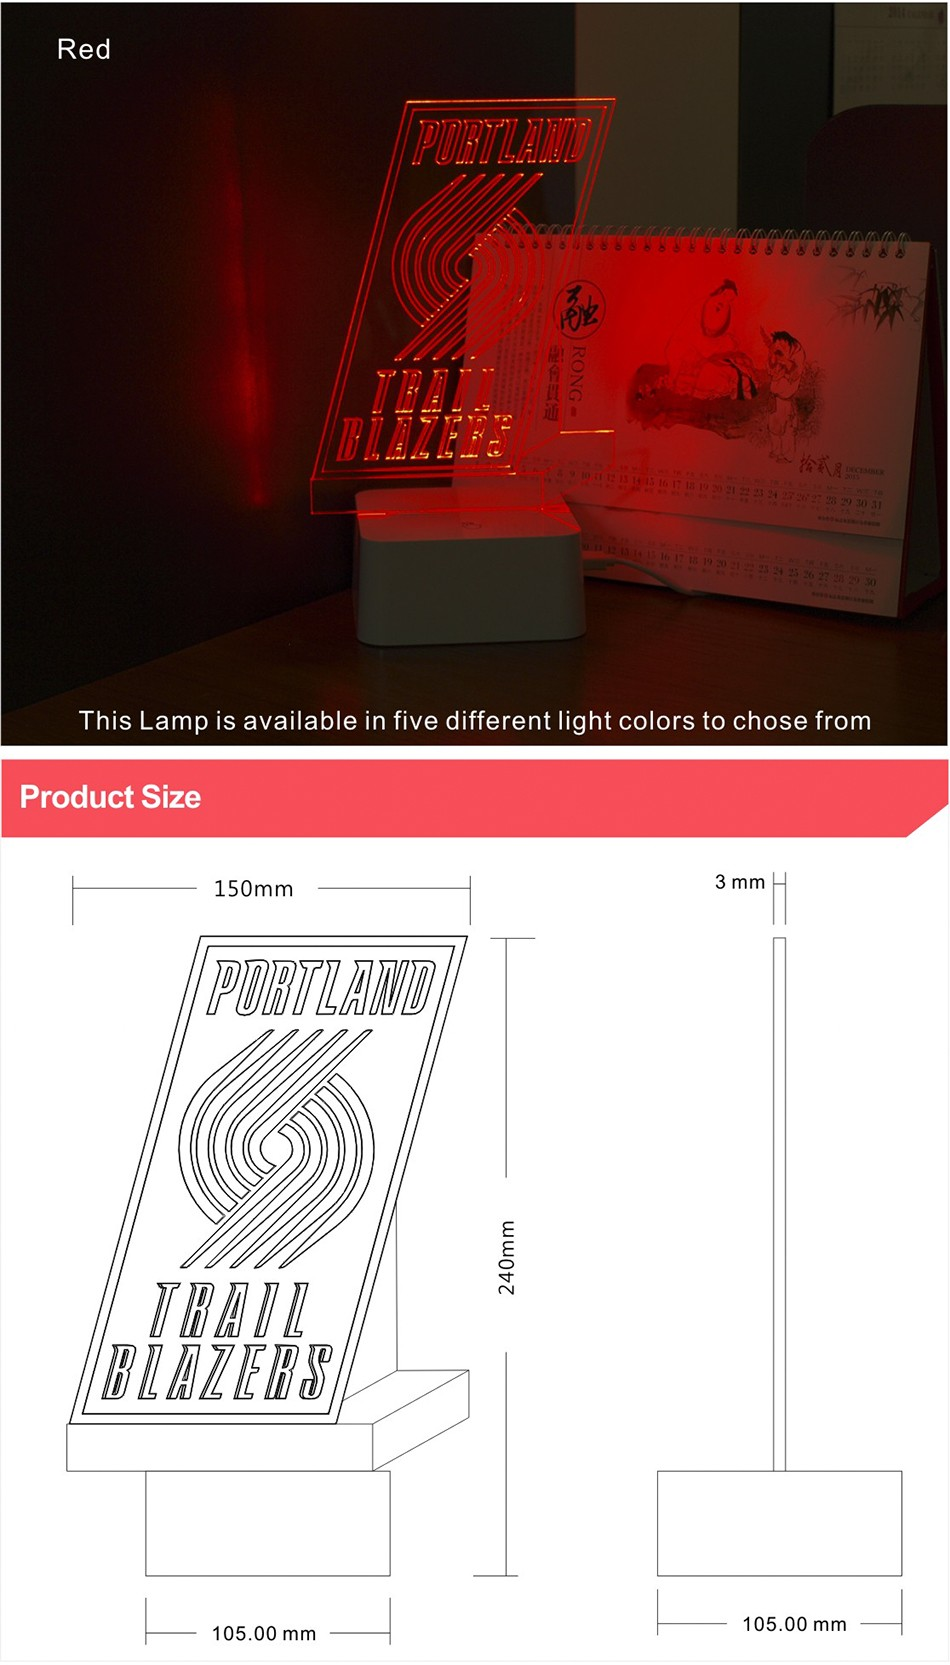 3D Lamp USB Novelty for Portland NBA Basketball Fans LED Night Light as Creative Gifts or Home Decor (5)